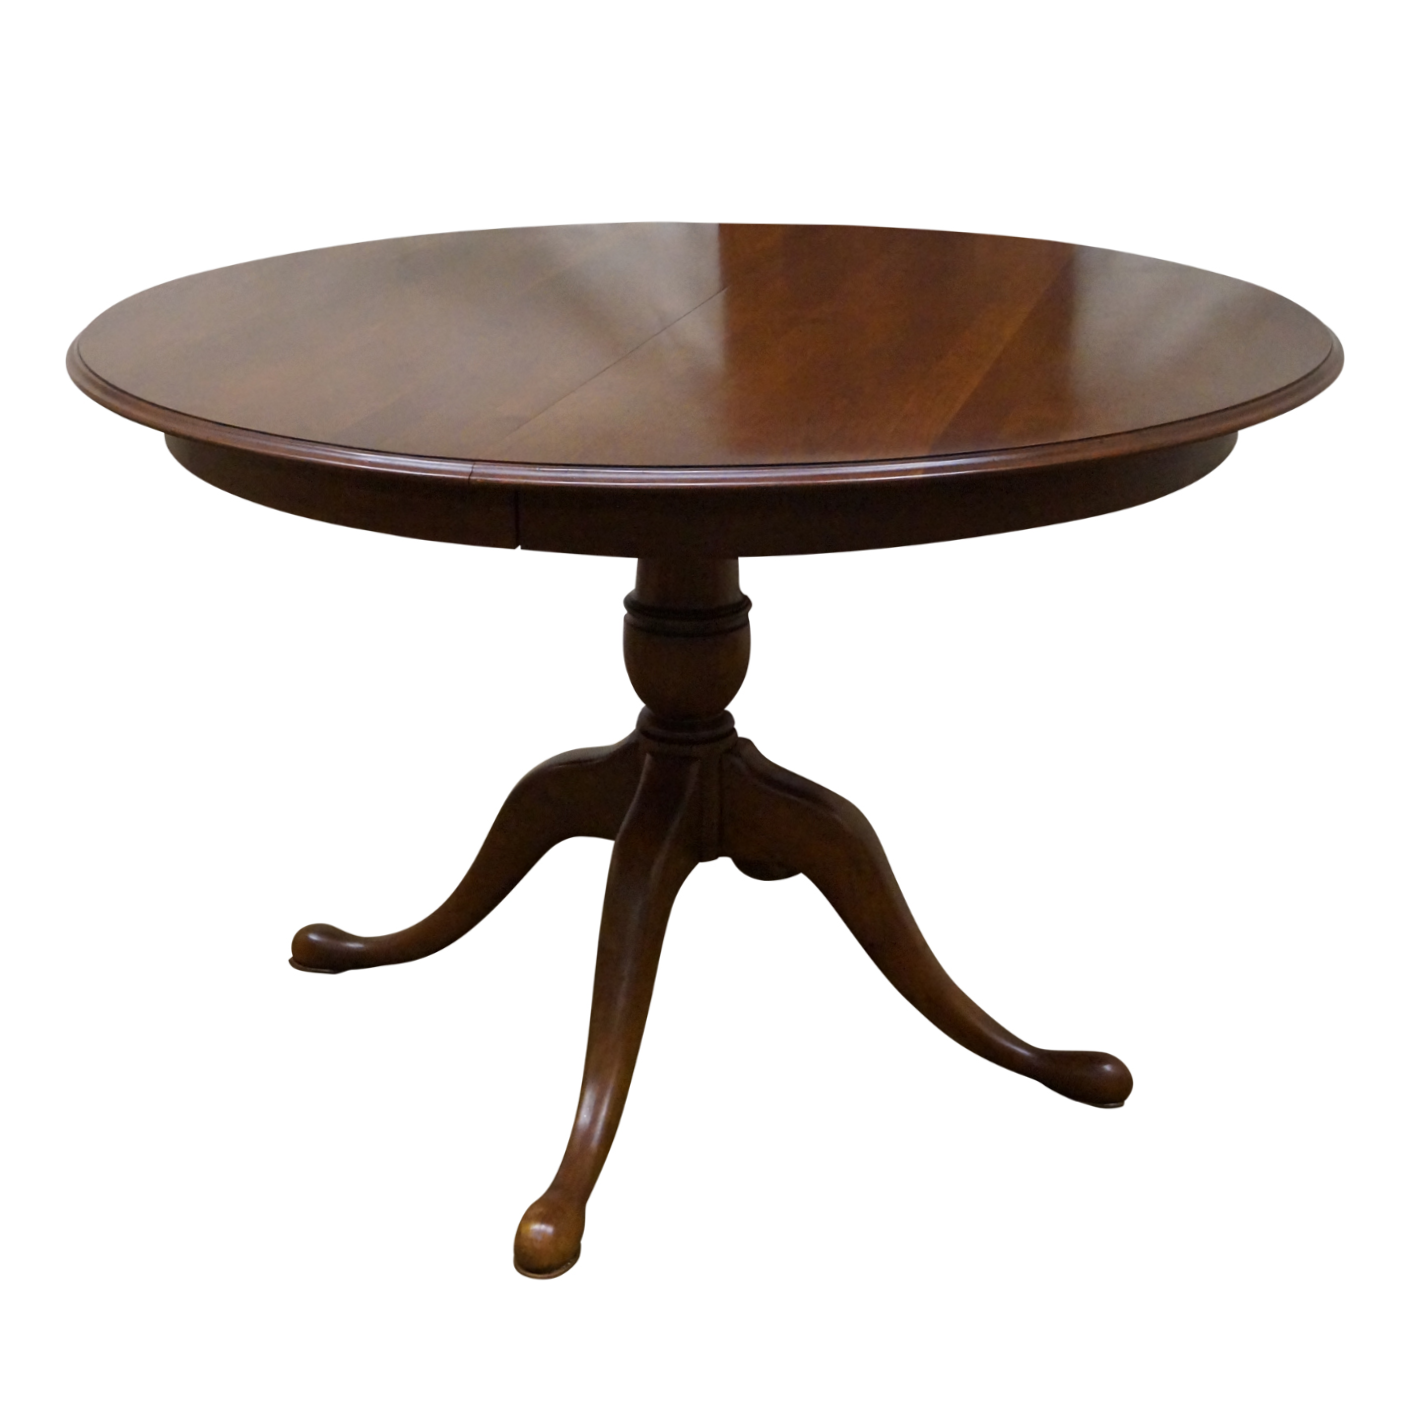 ethan allen solid cherry round dining table chairish. Black Bedroom Furniture Sets. Home Design Ideas